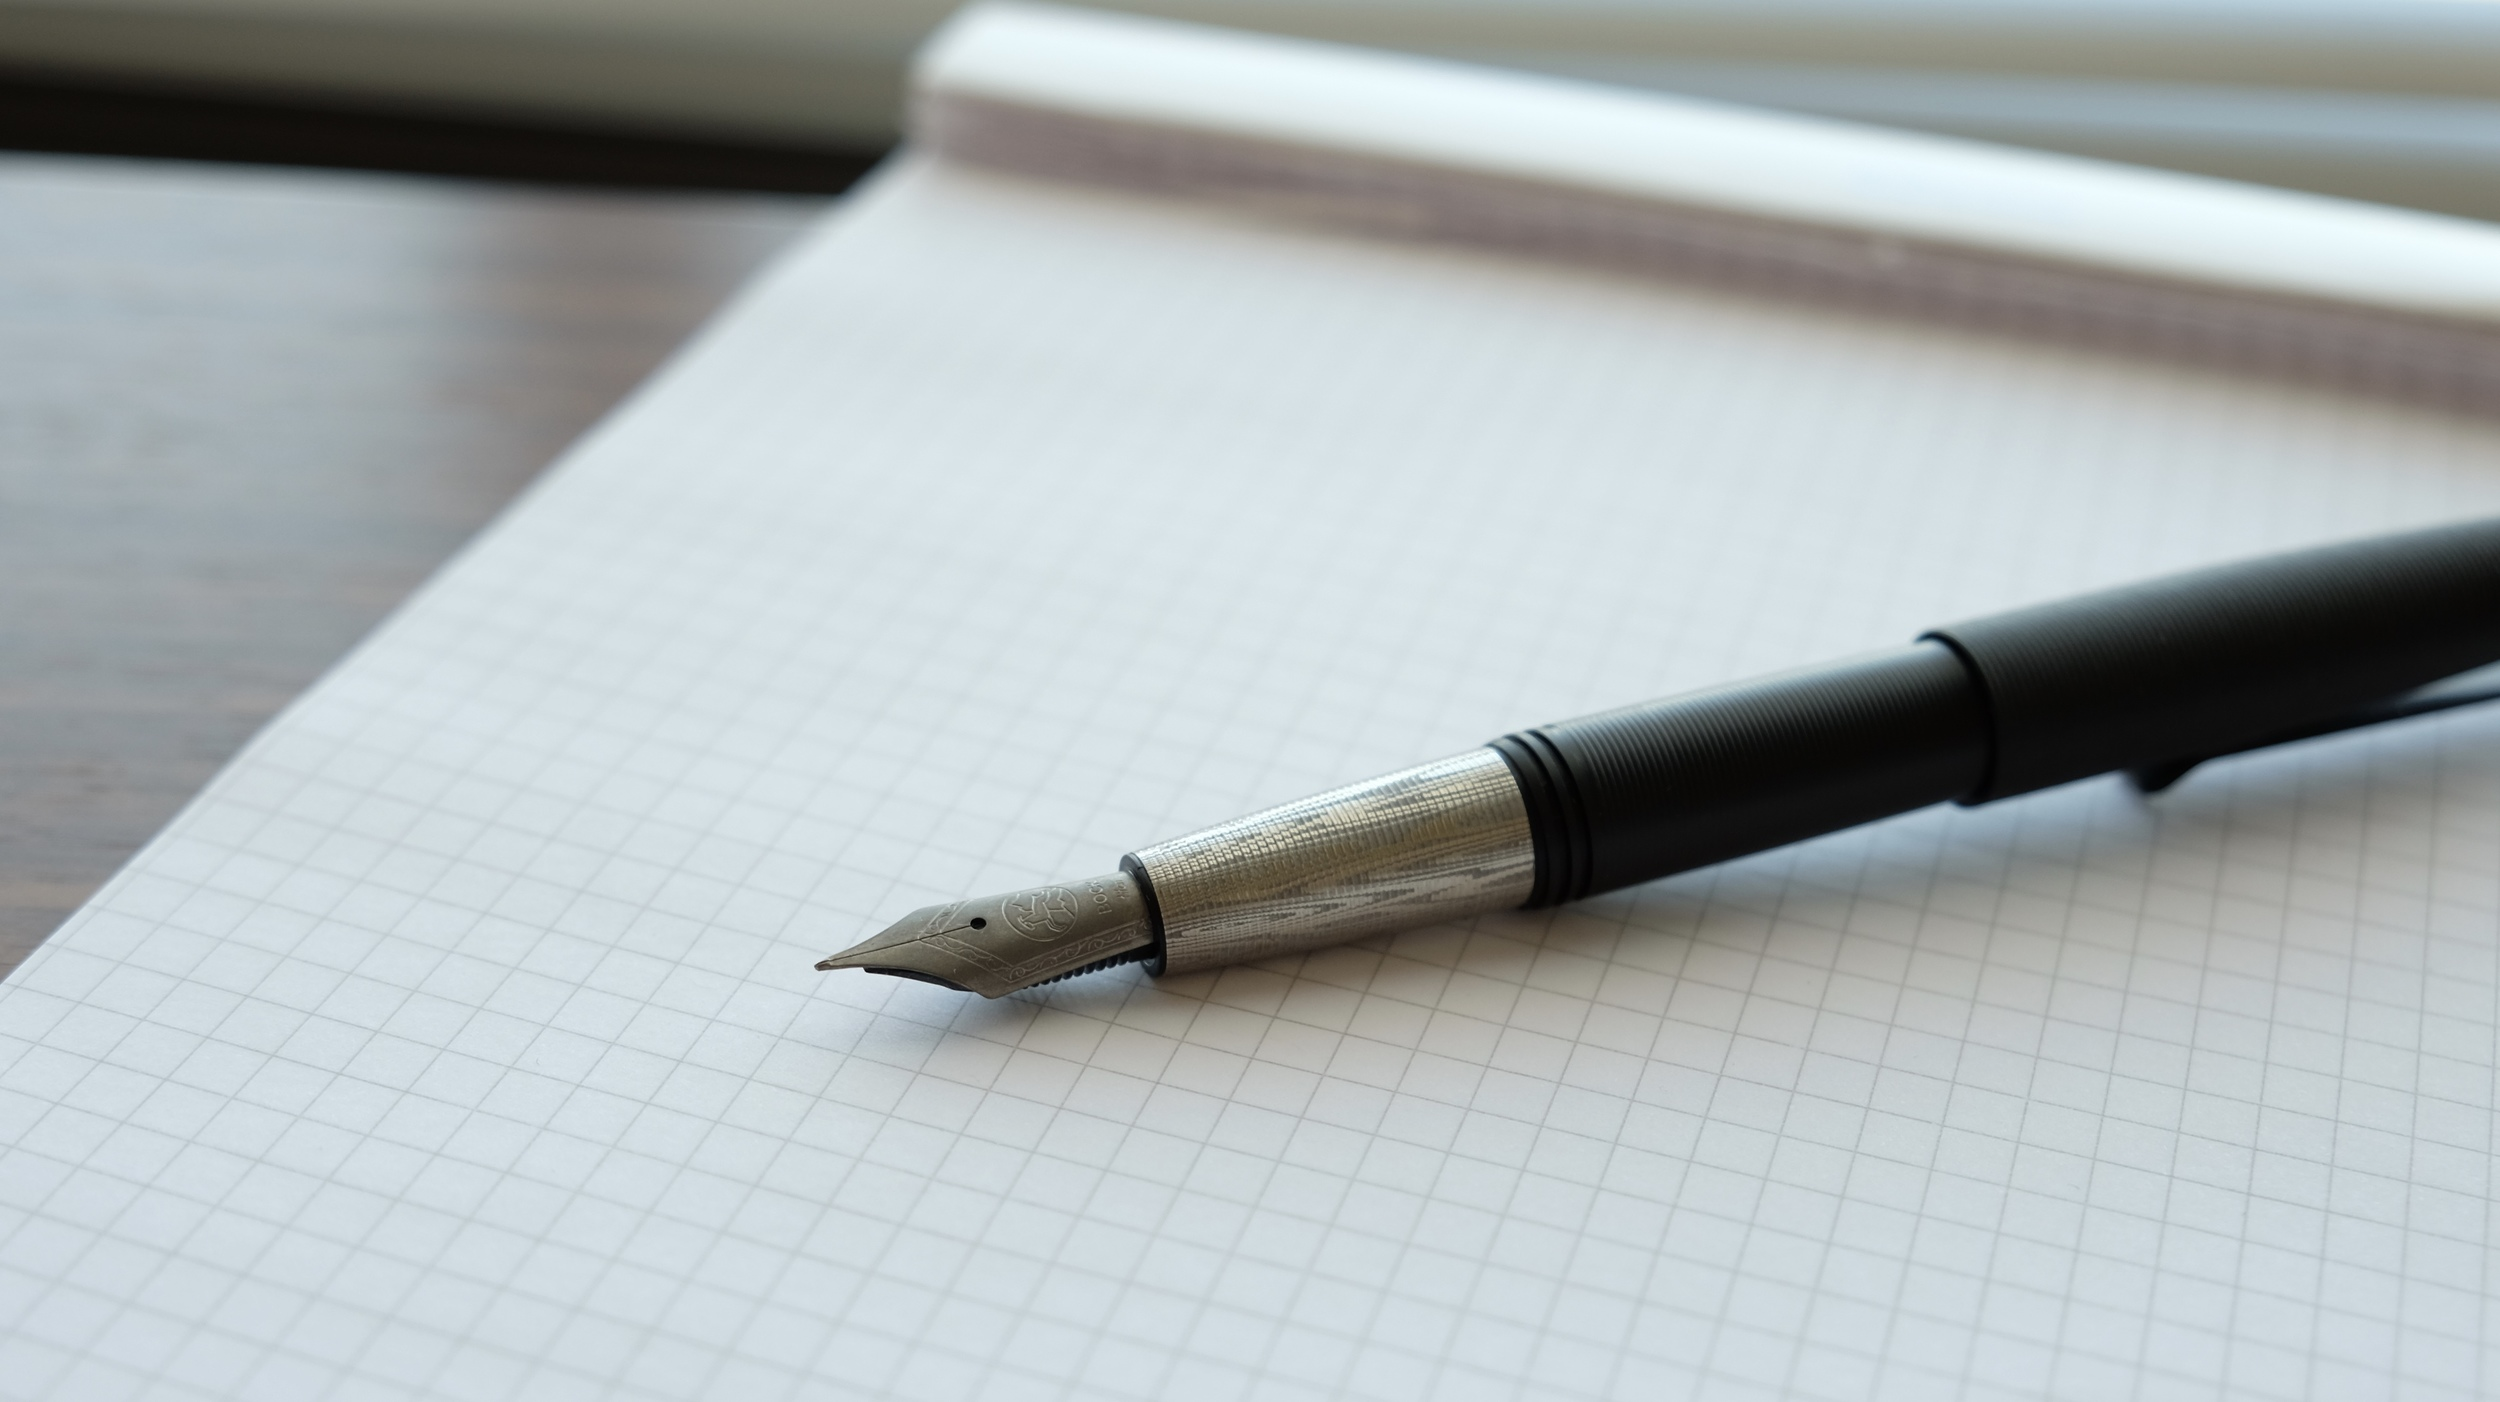 The Tactile Turn Gist Fountain Pen in polycarbonate with Damascus grip and finial. Bock titanium nib.